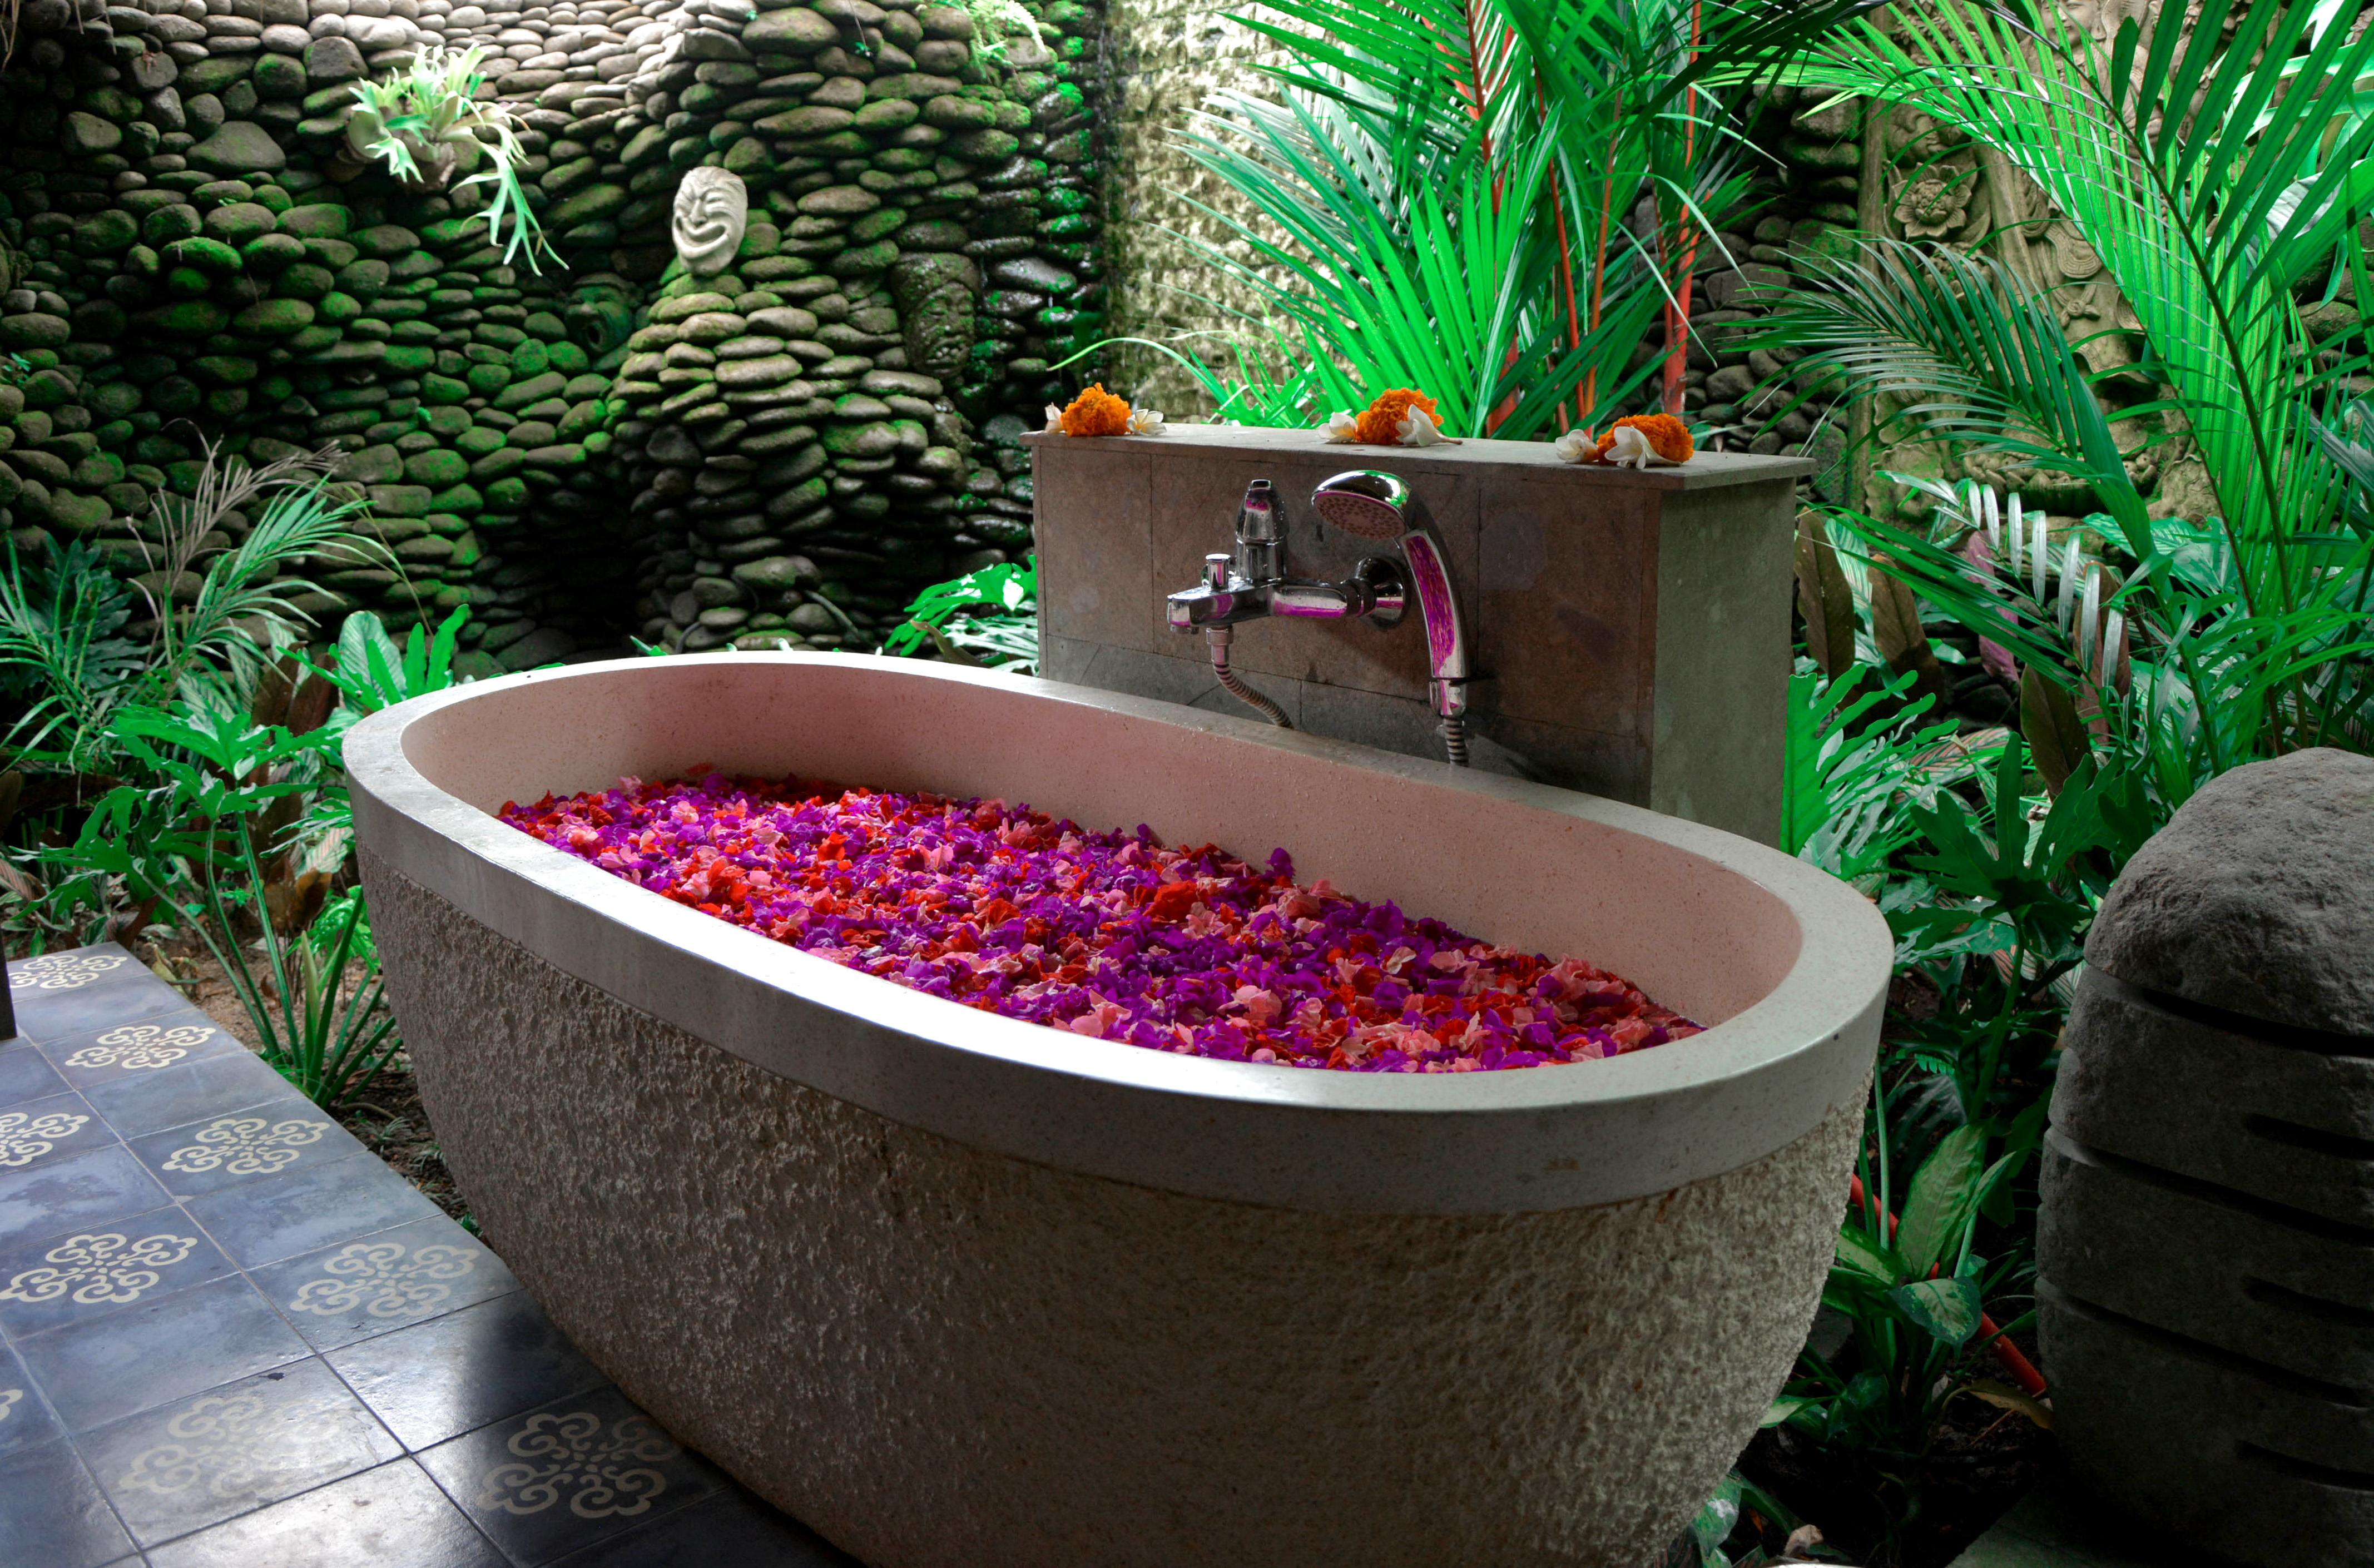 karsa spa massage and flower bath